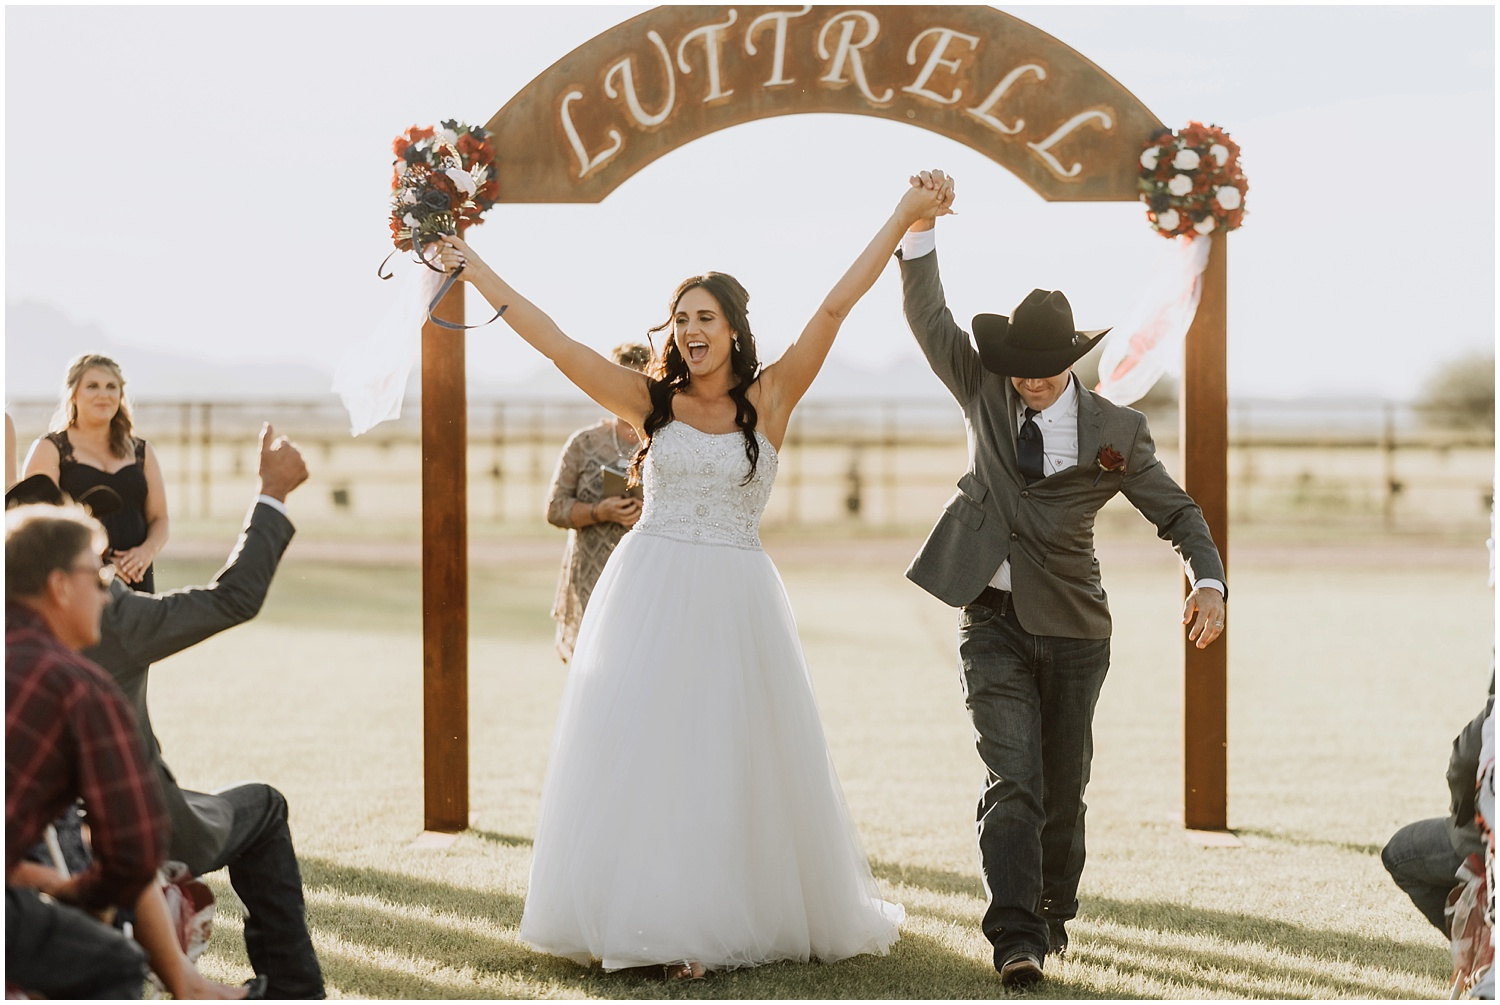 Bride and groom celebrate after getting announced husband and wife.